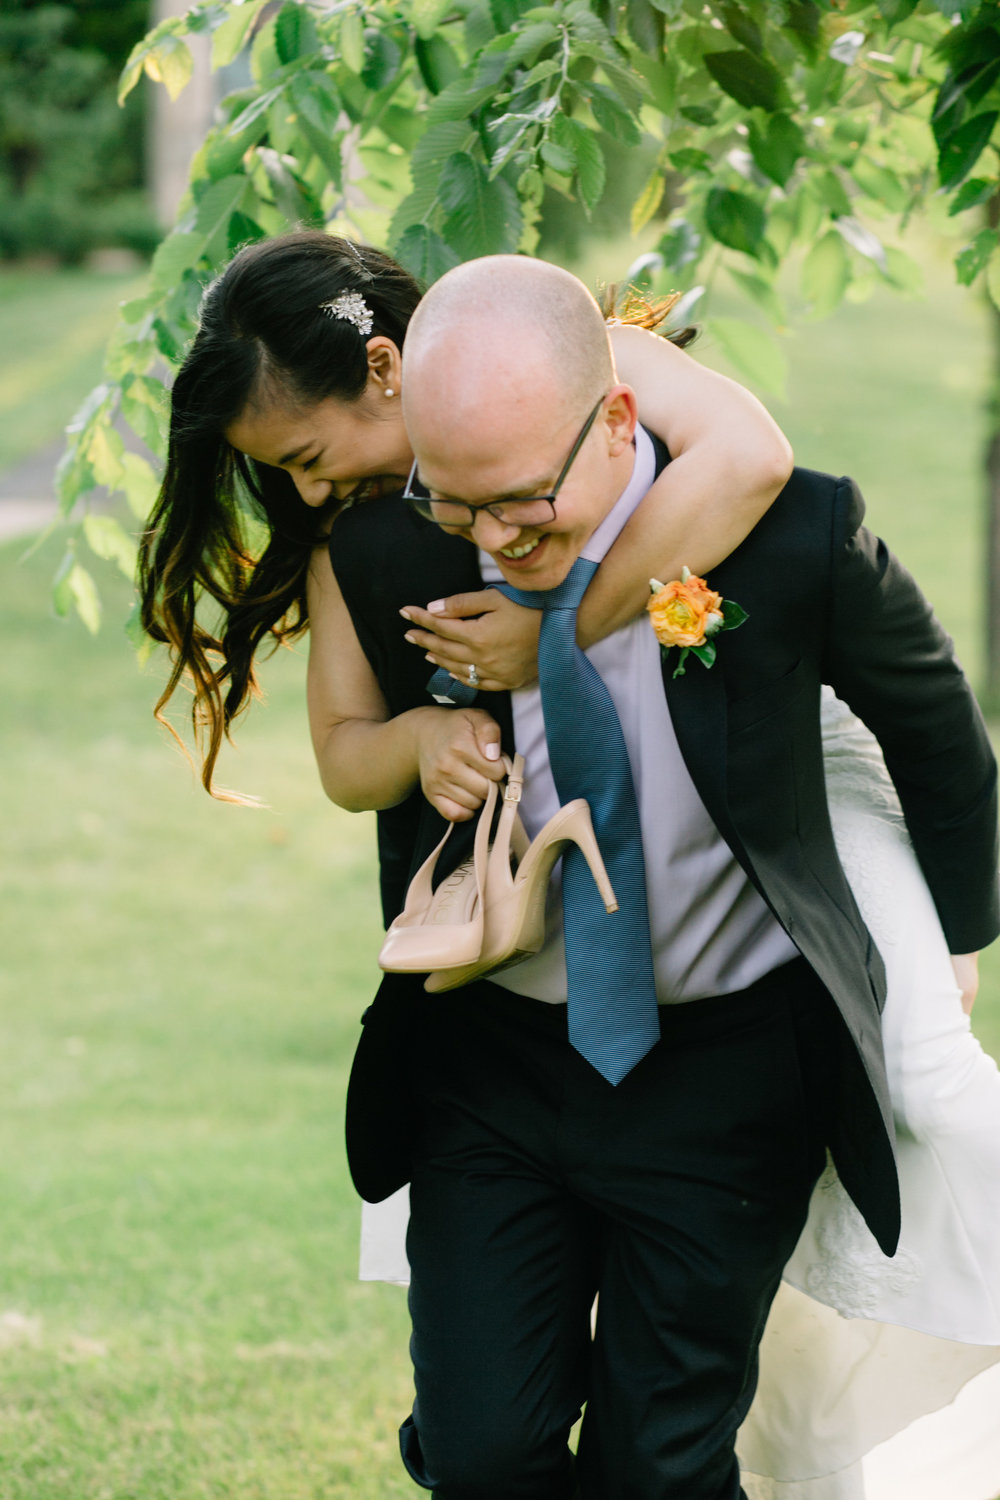 piggy back ride, shoes off, happy bride and groom, Whims and Joy Minneapolis photographer :: Sixpence Events & Planning Minnesota wedding planner :: Nicollet Island Pavilion.jpg